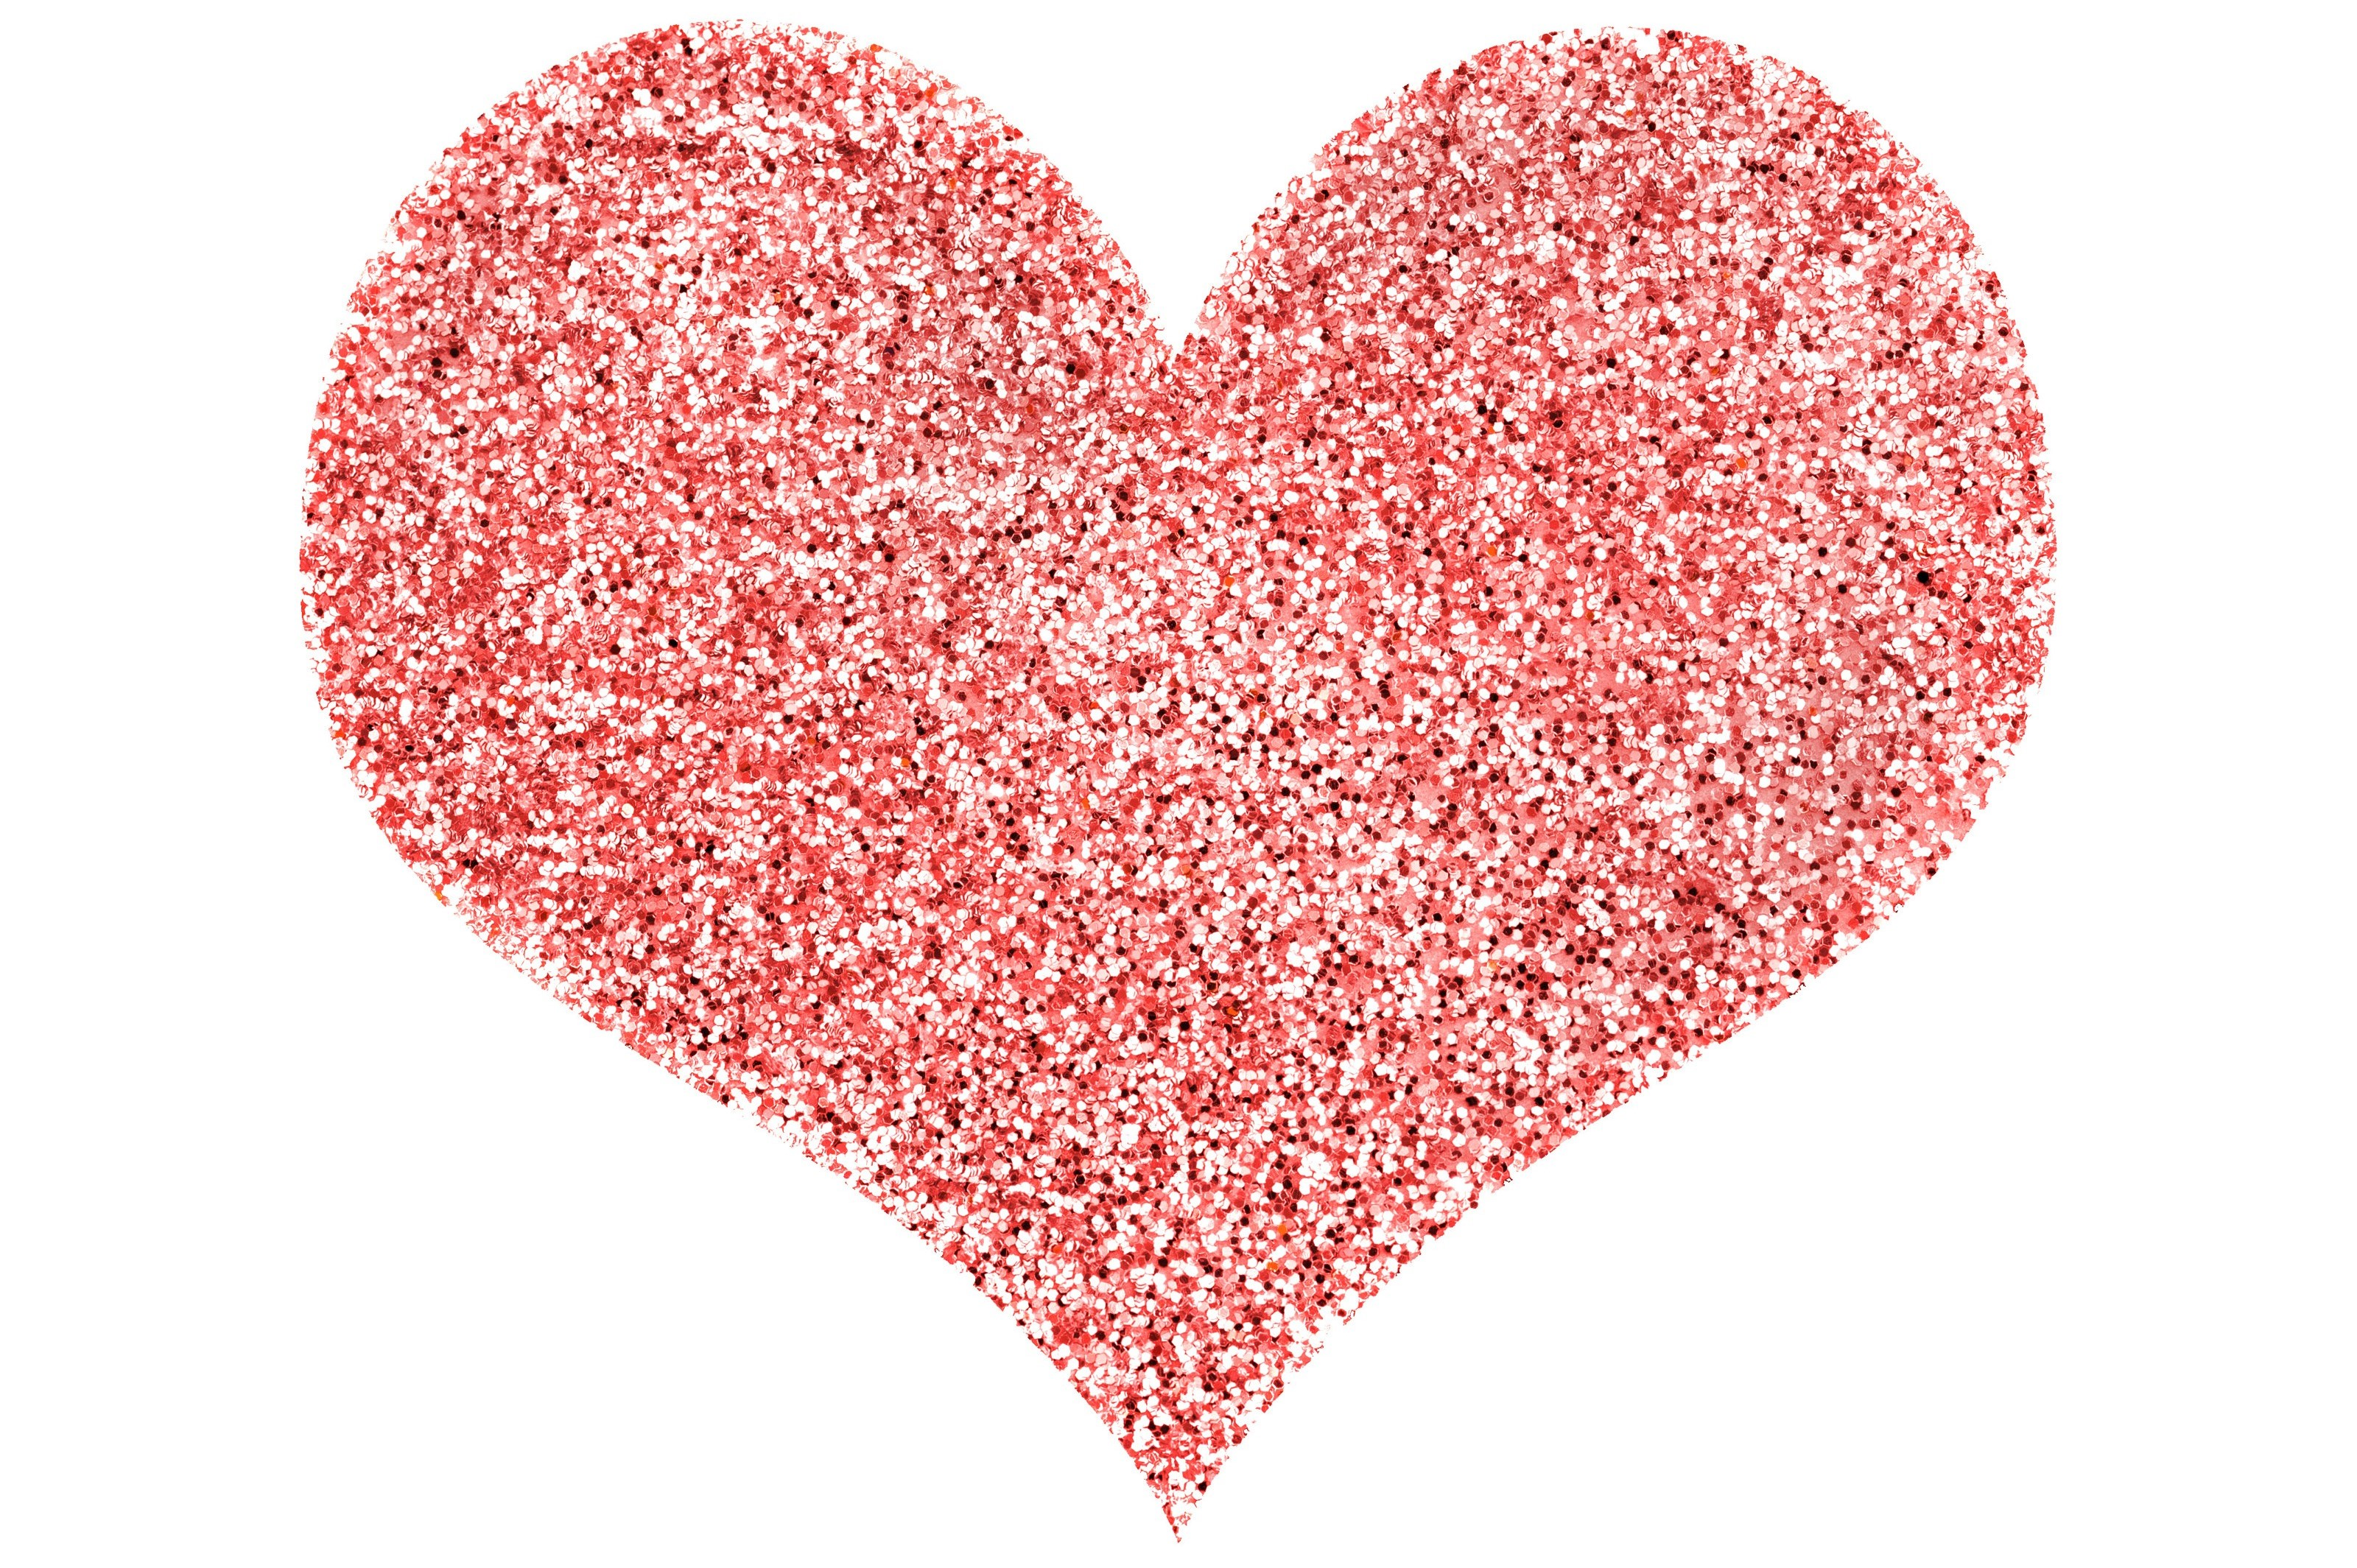 a red love heart shape on white background composed of sparking glitter